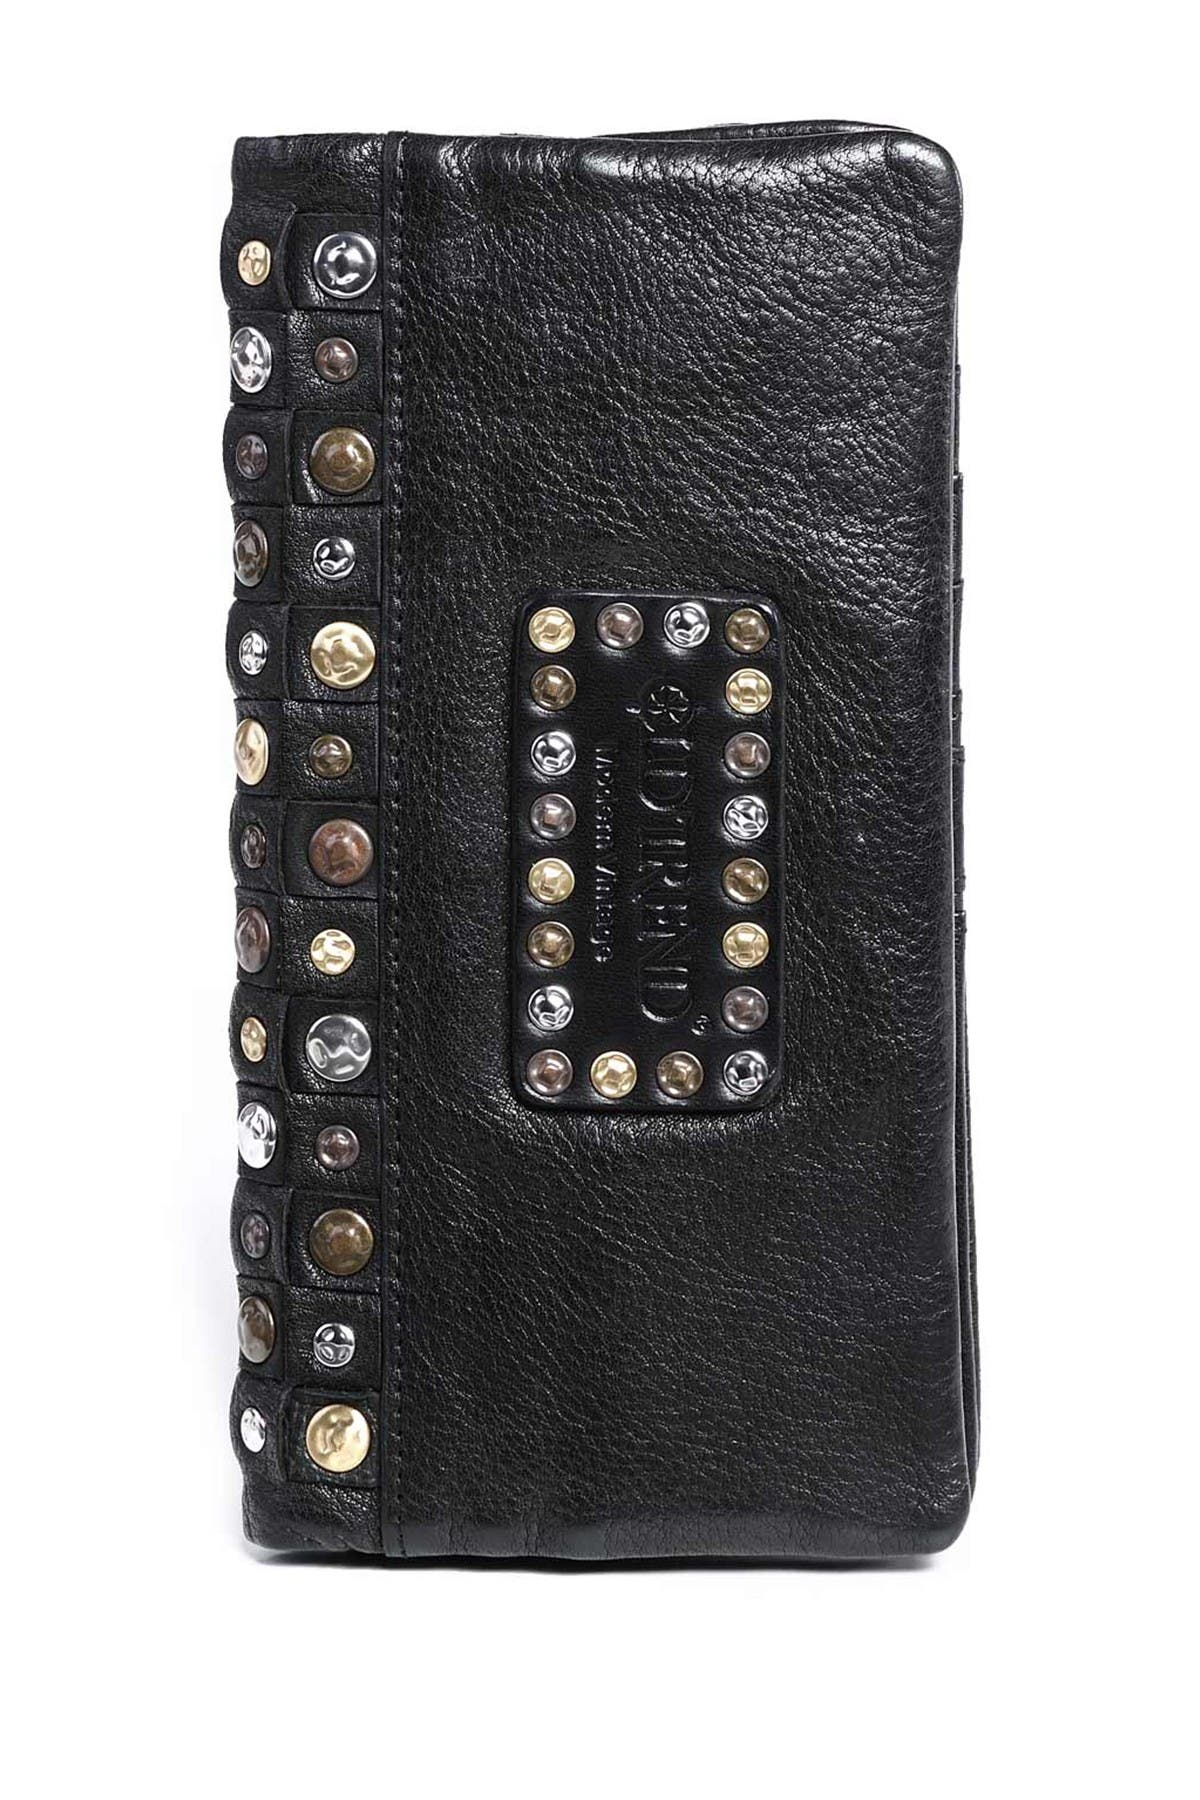 Image of Old Trend Camellia Leather Wallet